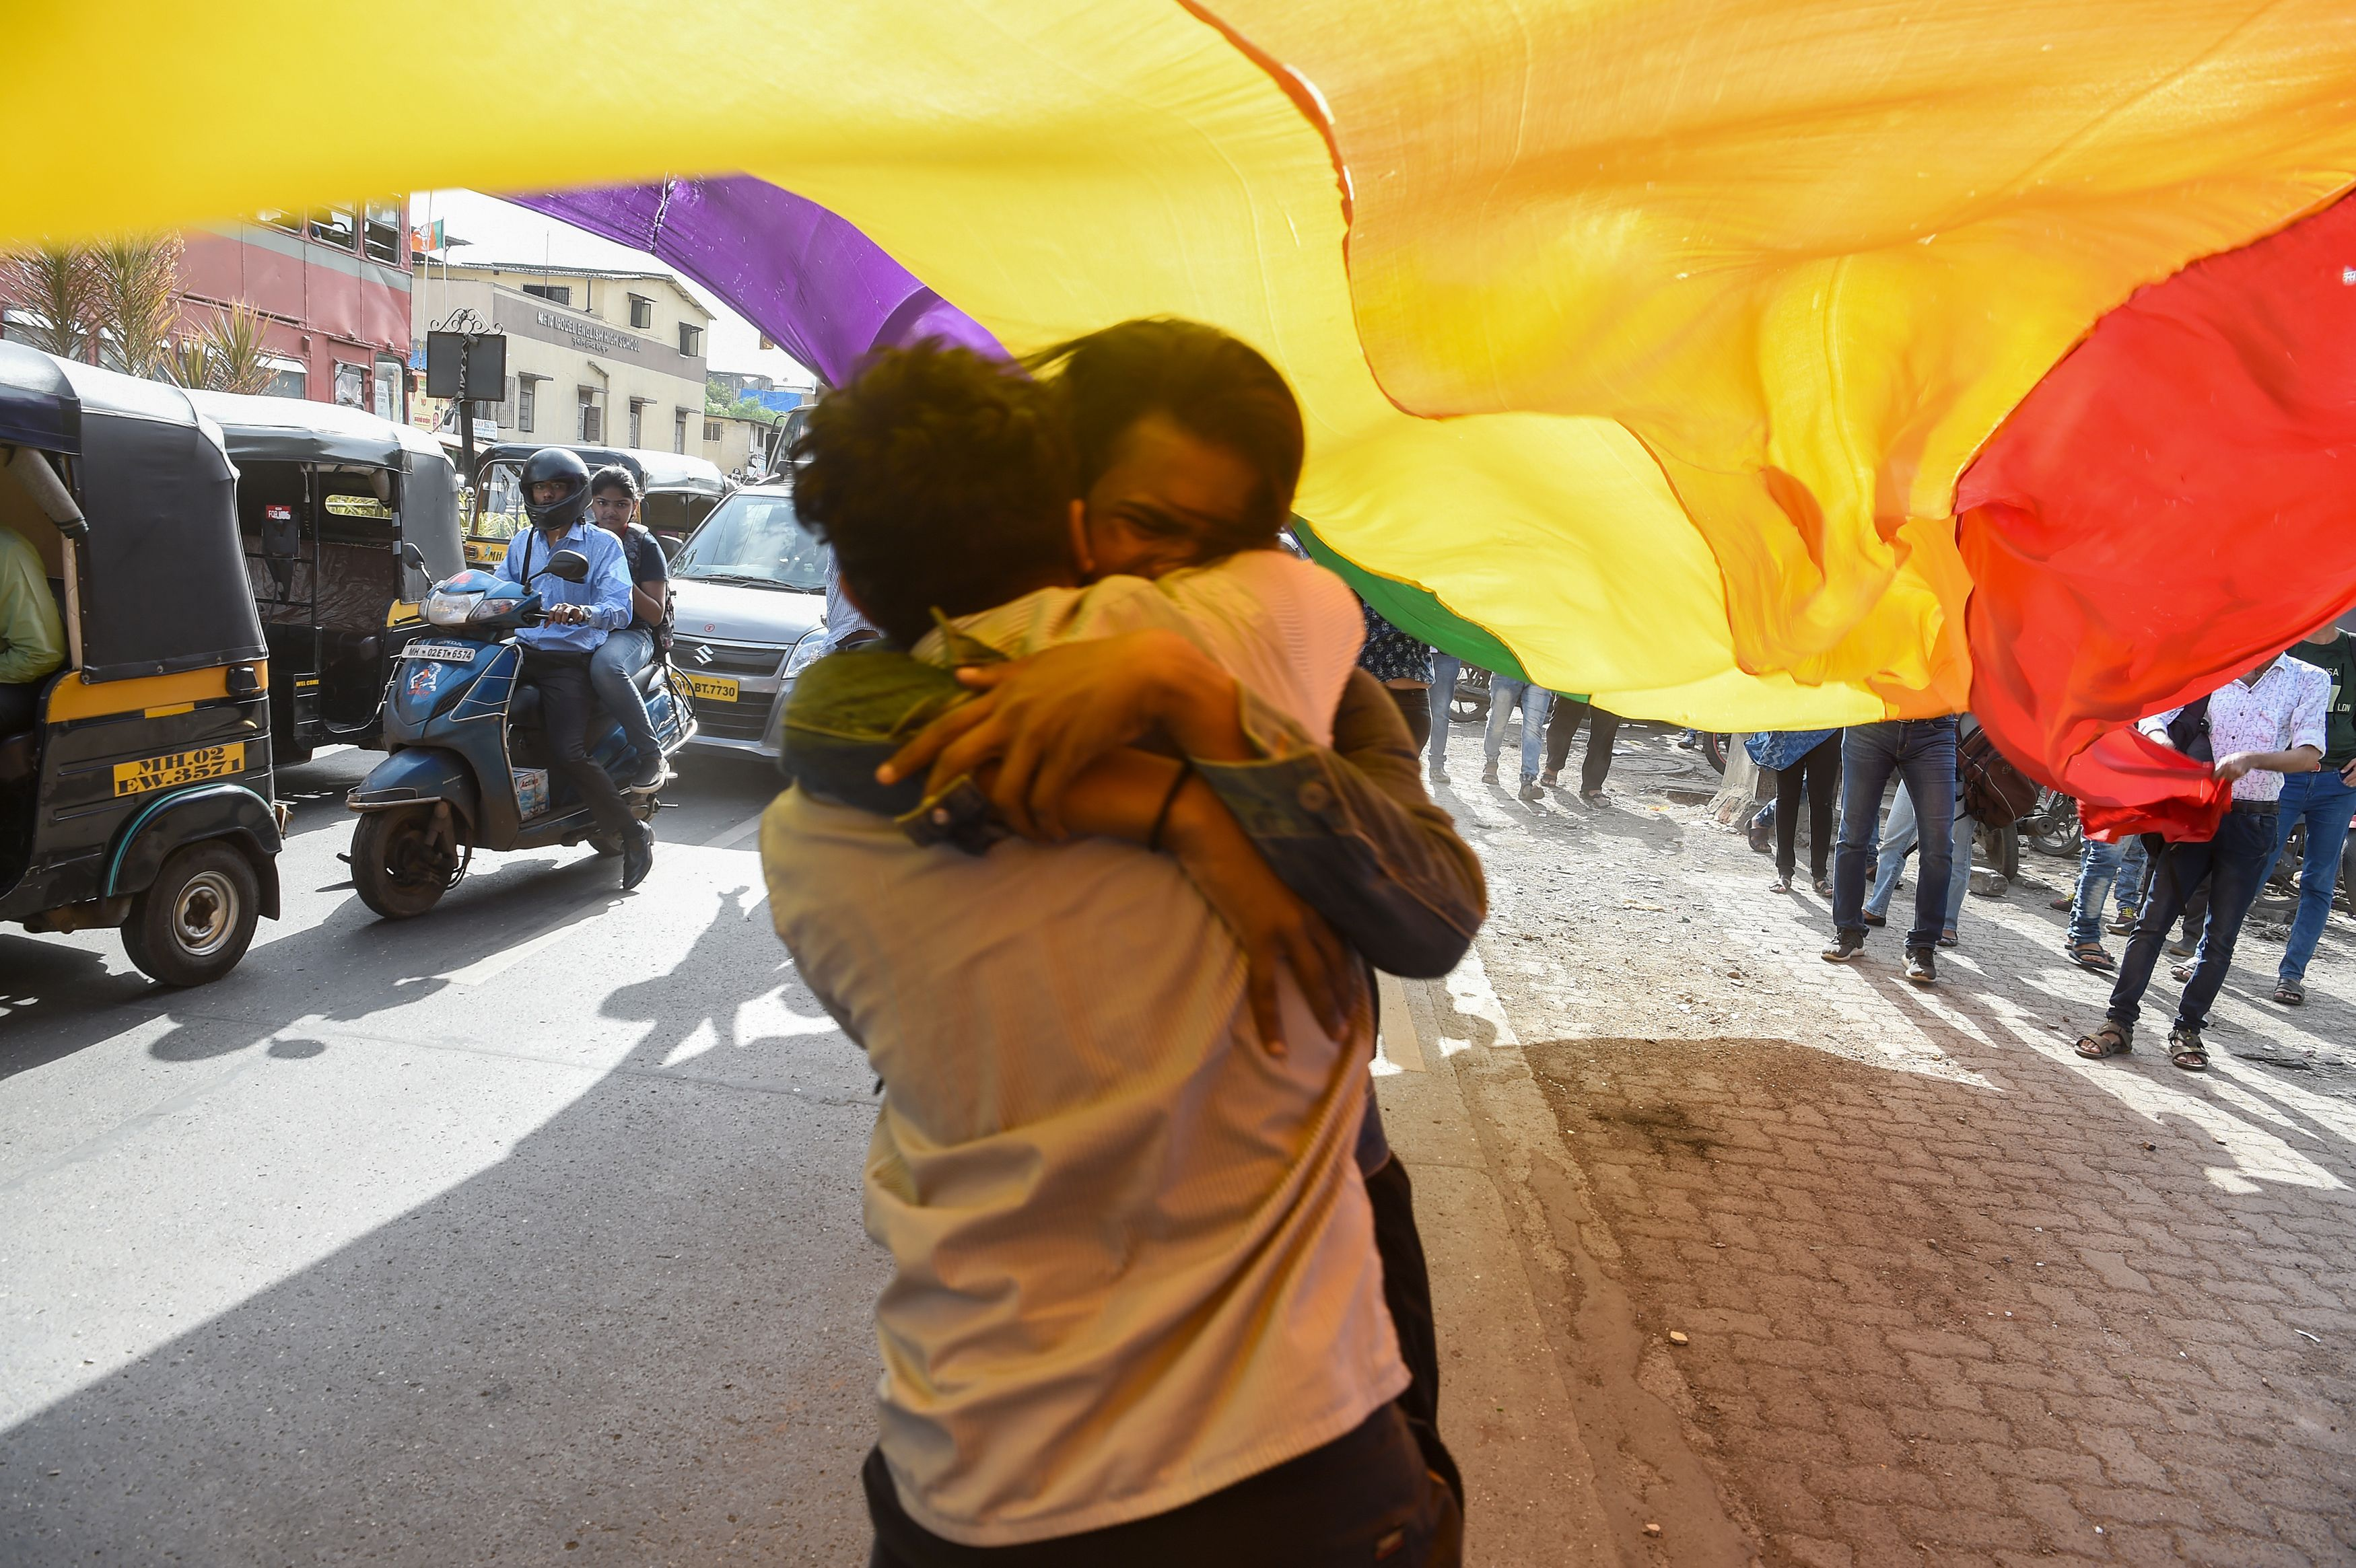 Members and supporters of the LGBTQ community in Mumbai celebrate the Indian supreme court decision to strike down a colonial-era ban on same-sex relations on Sep. 6, 2018.